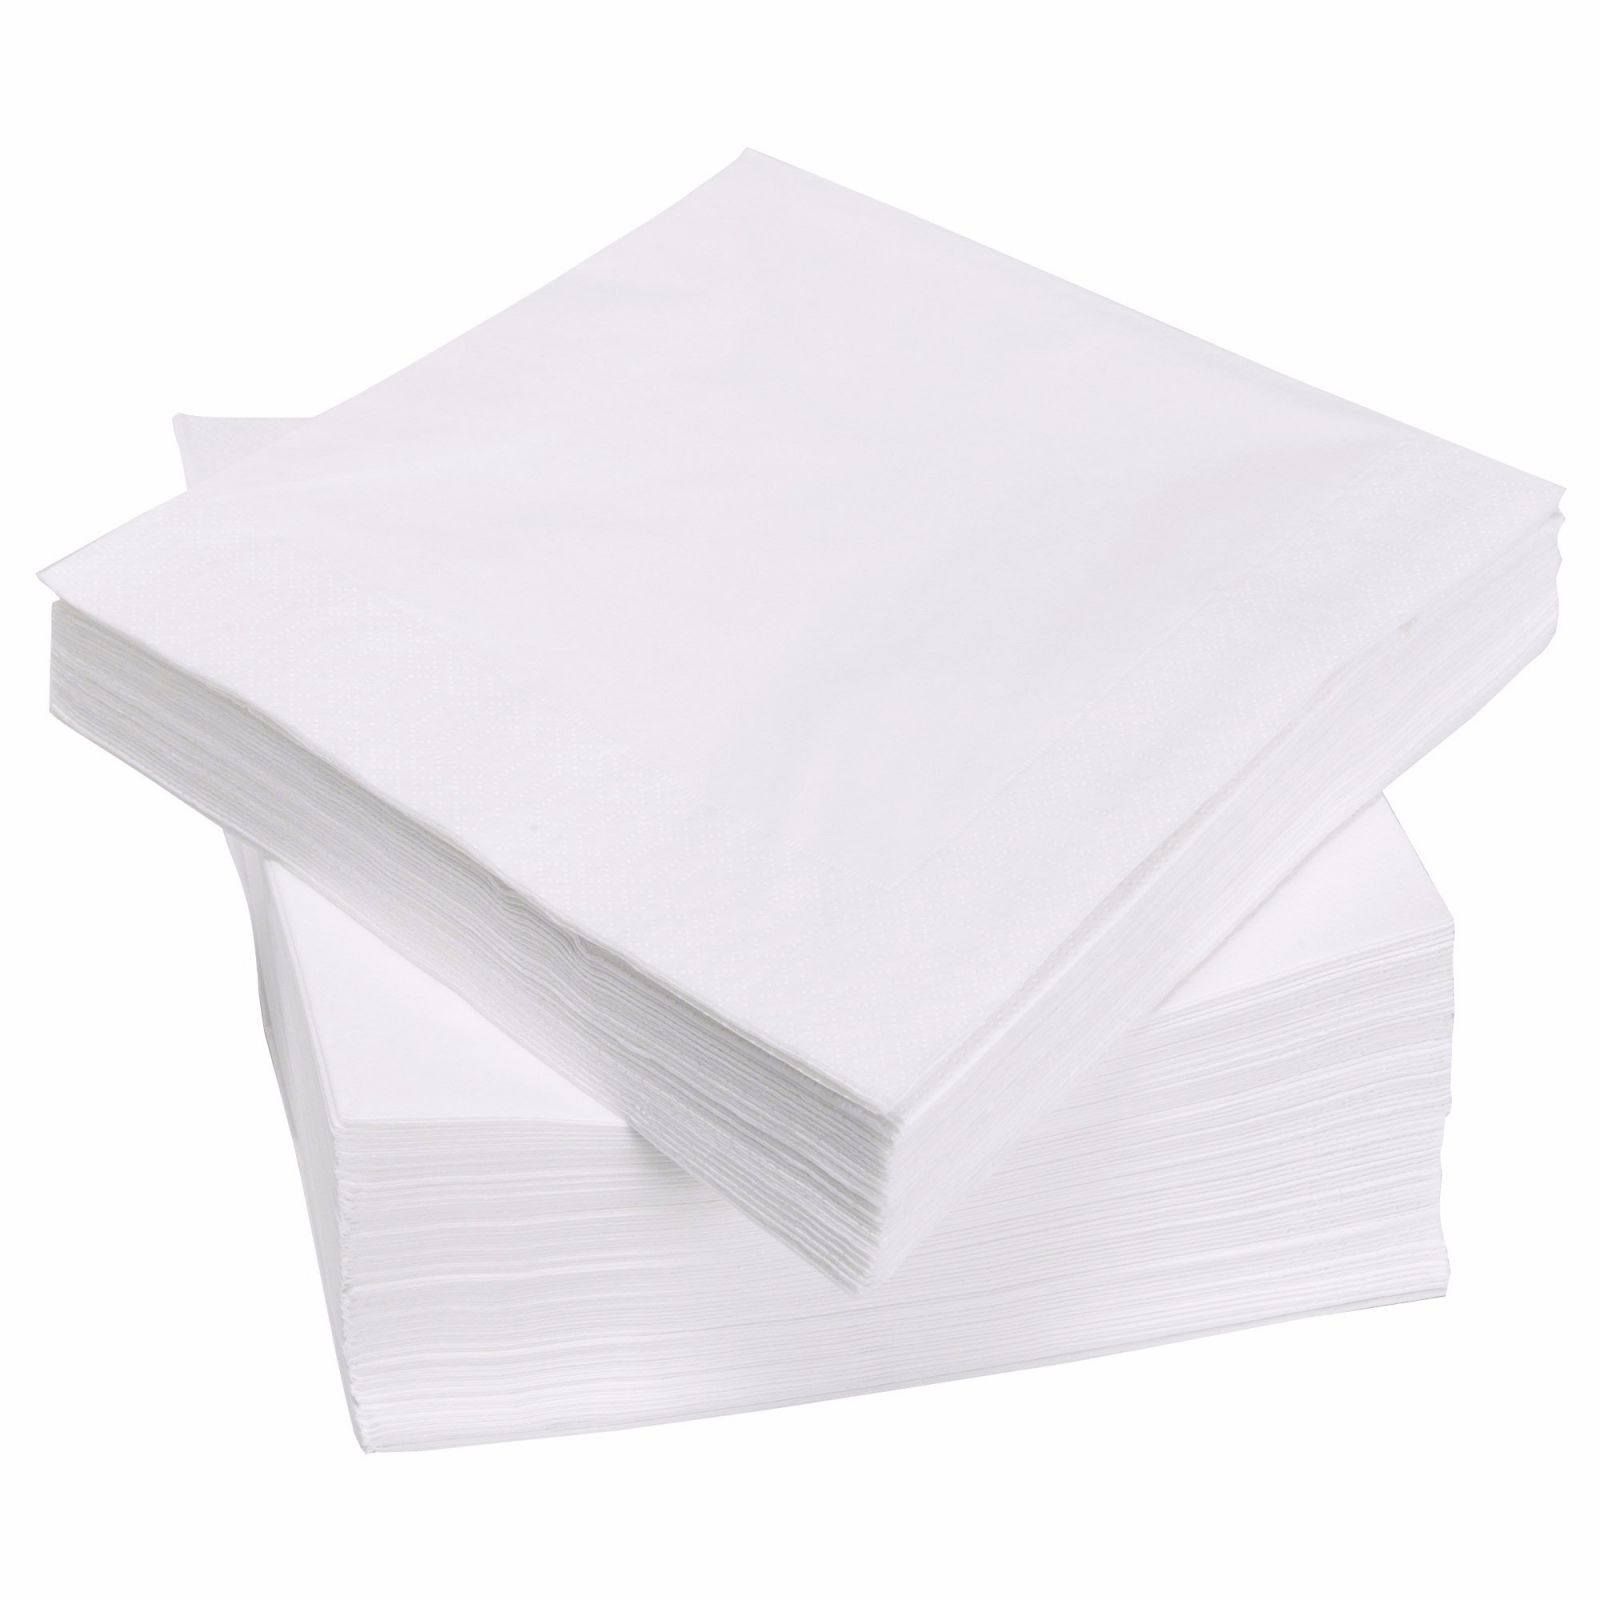 Cocktail Napkin 2 ply